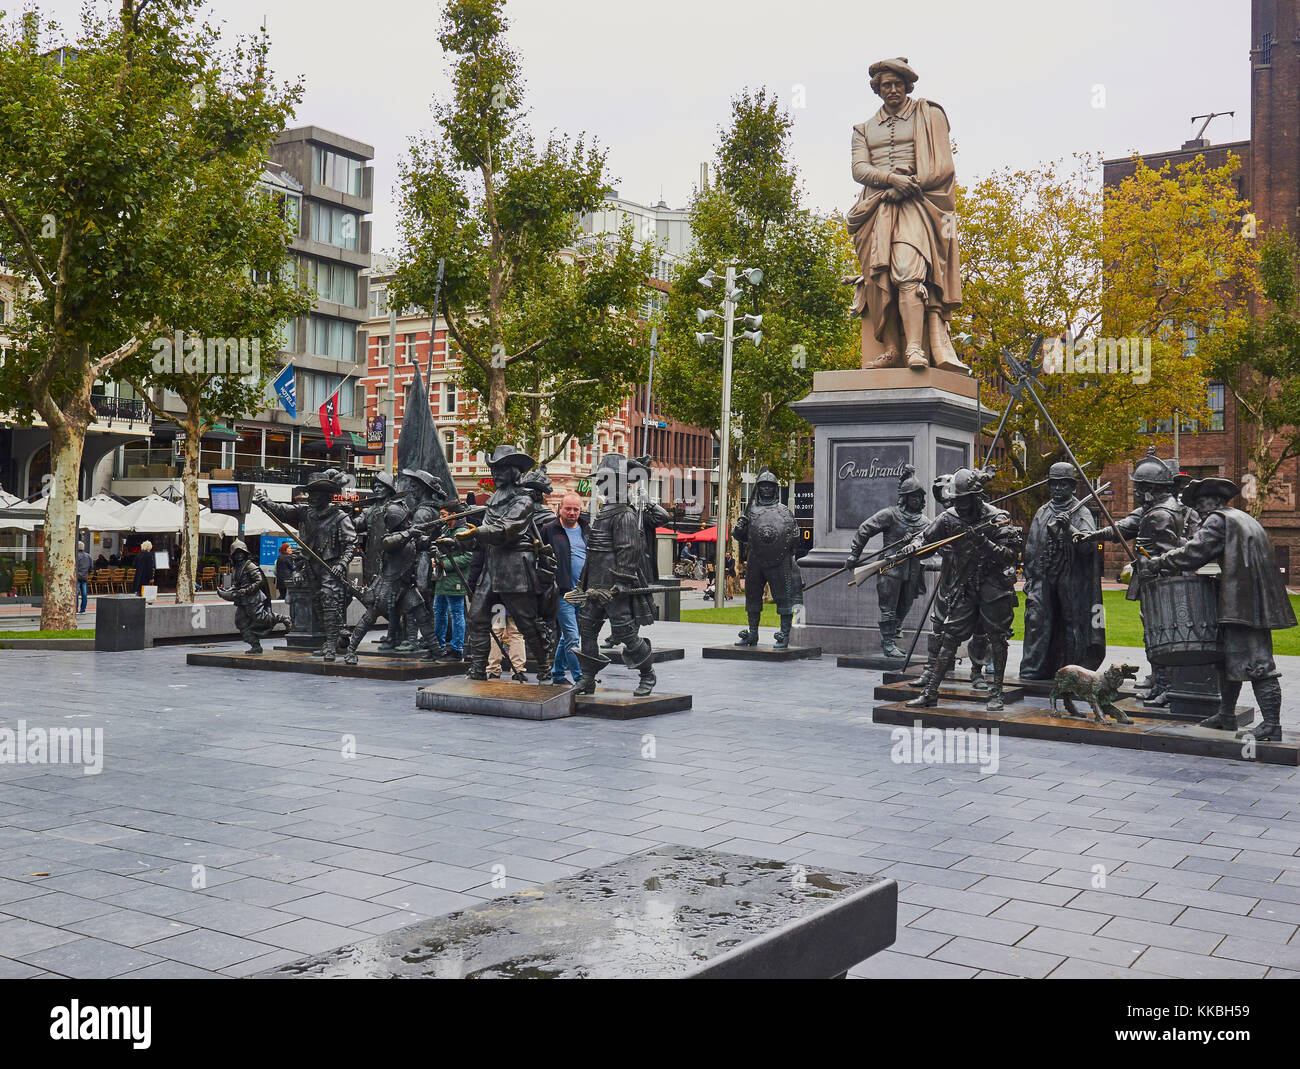 1852 cast iron statue of Rembrandt by Louis Royer and bronze casts based on Rembrandt's painting the Night Watch, - Stock Image